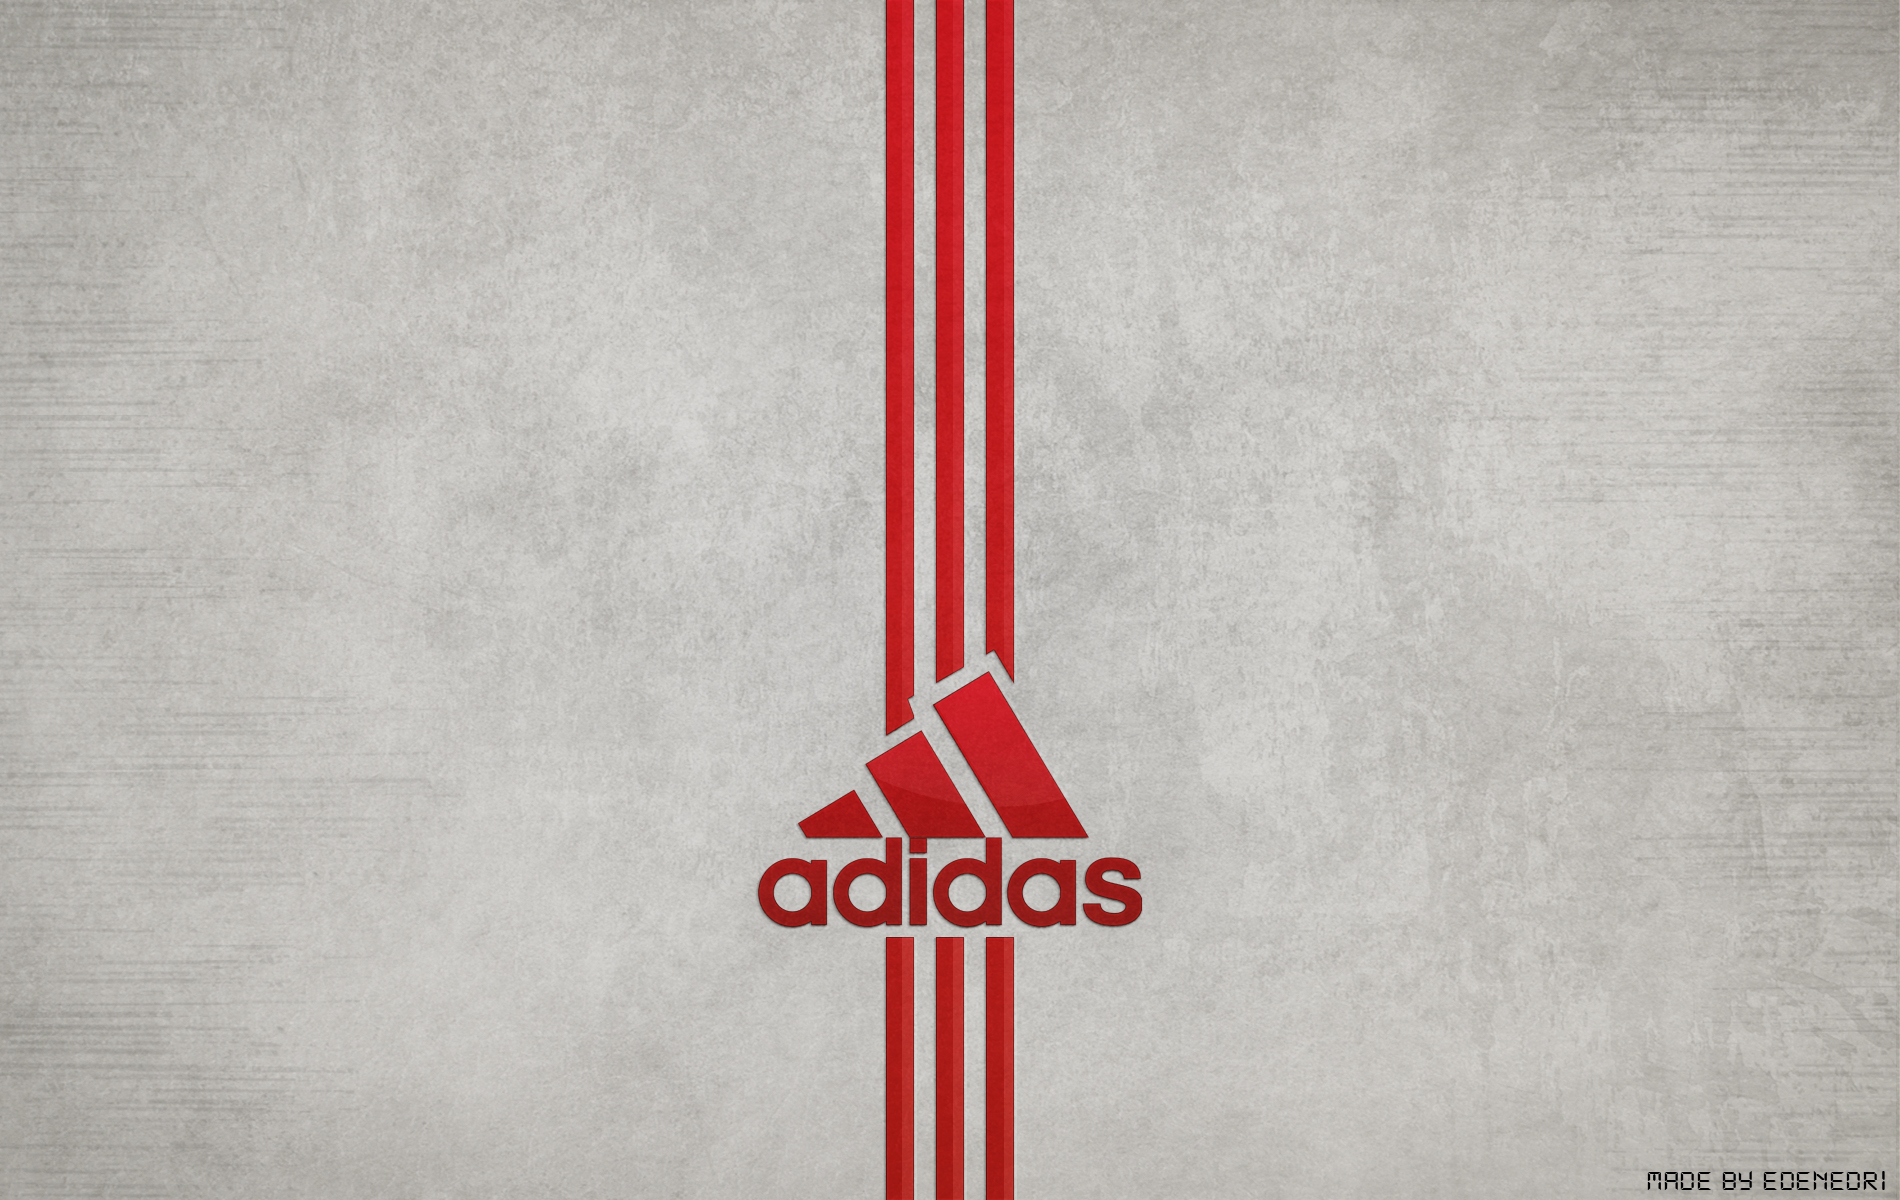 Adidas Wallpapers High Quality | Download Free